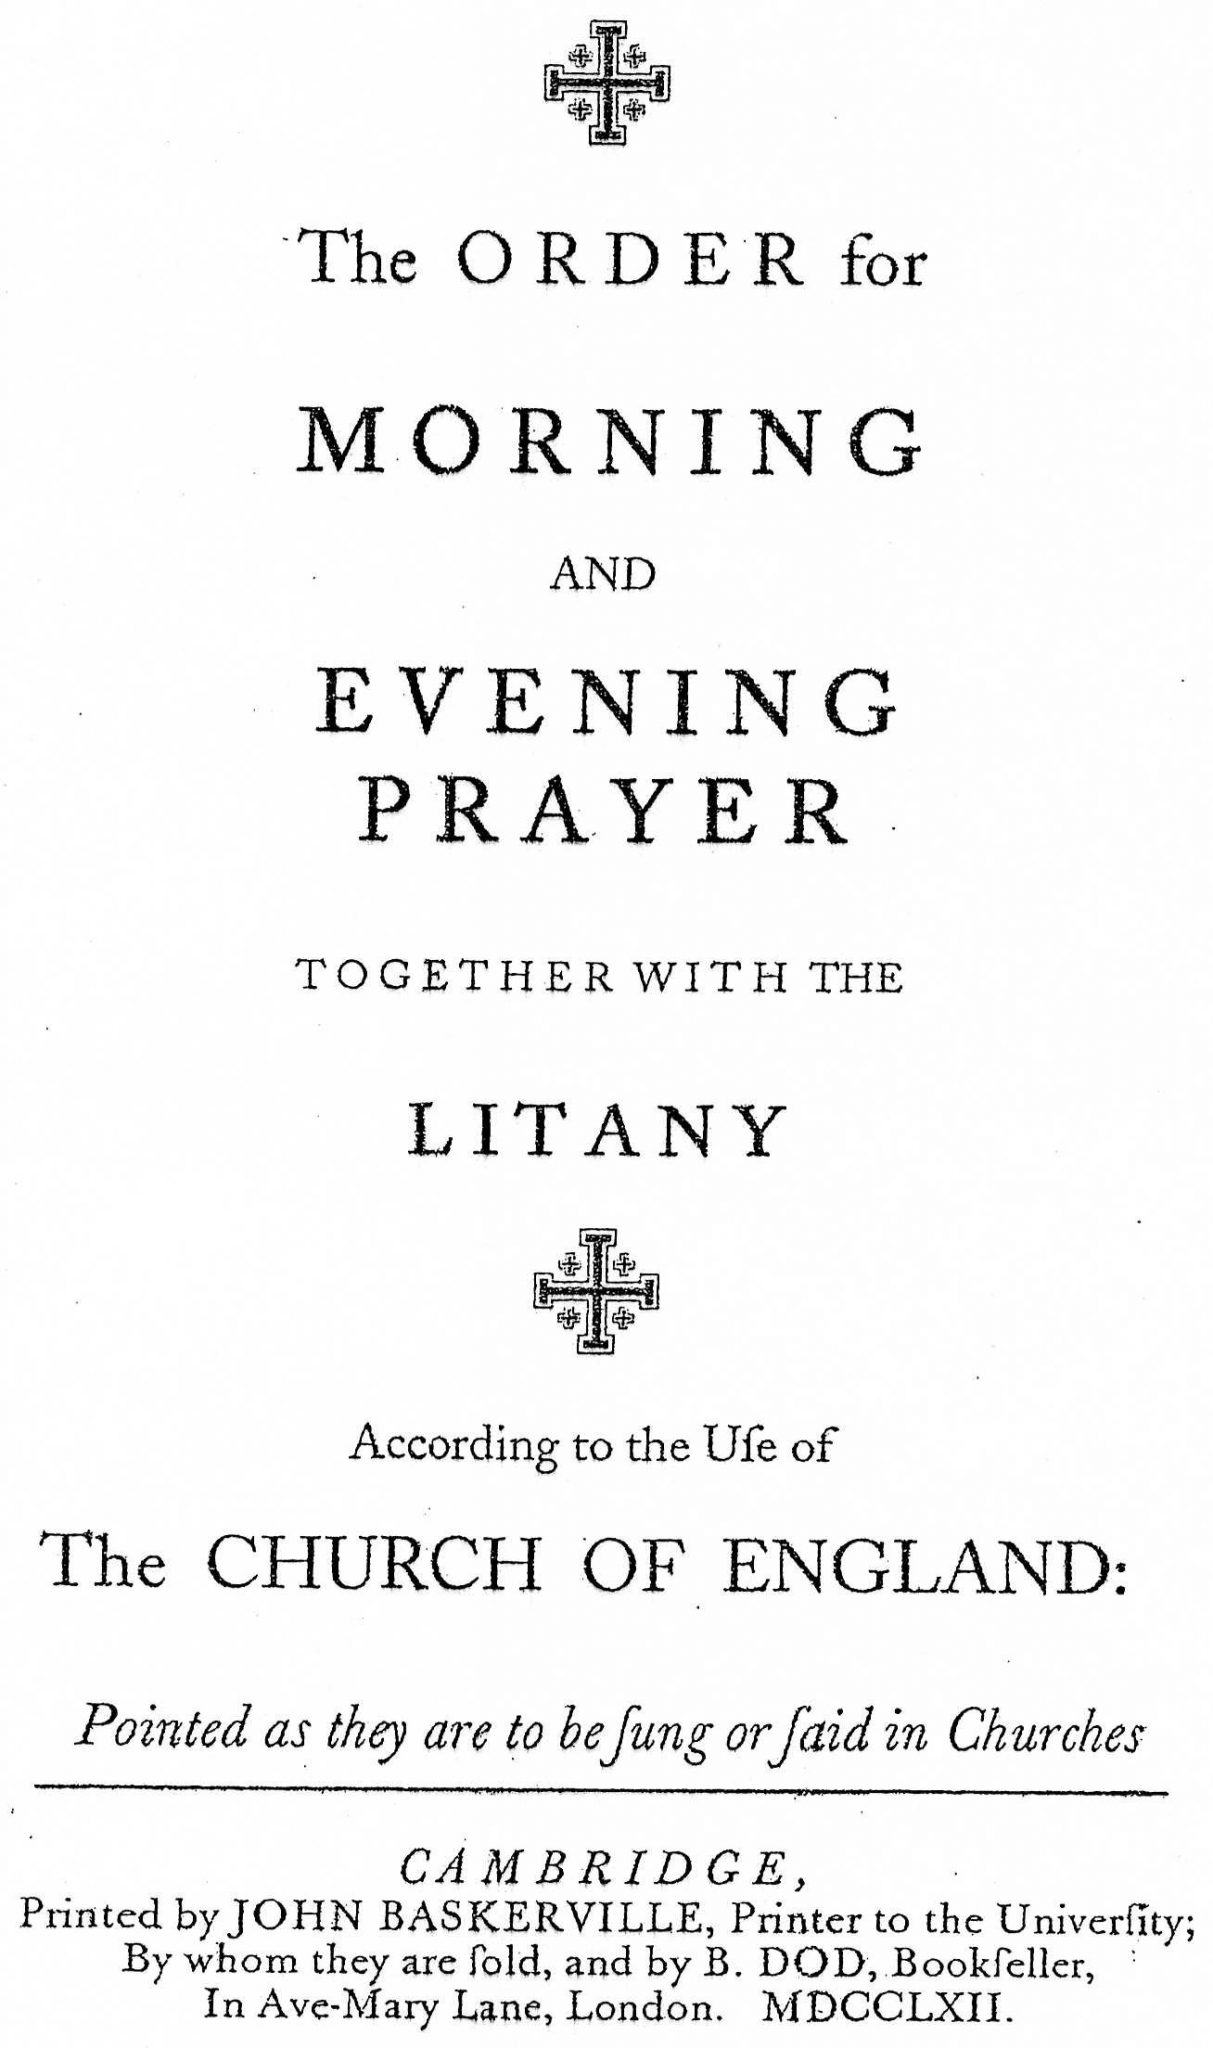 Order for Morning and Evening Prayer together with the Litany According to the Use of the Church of England, London, 1762